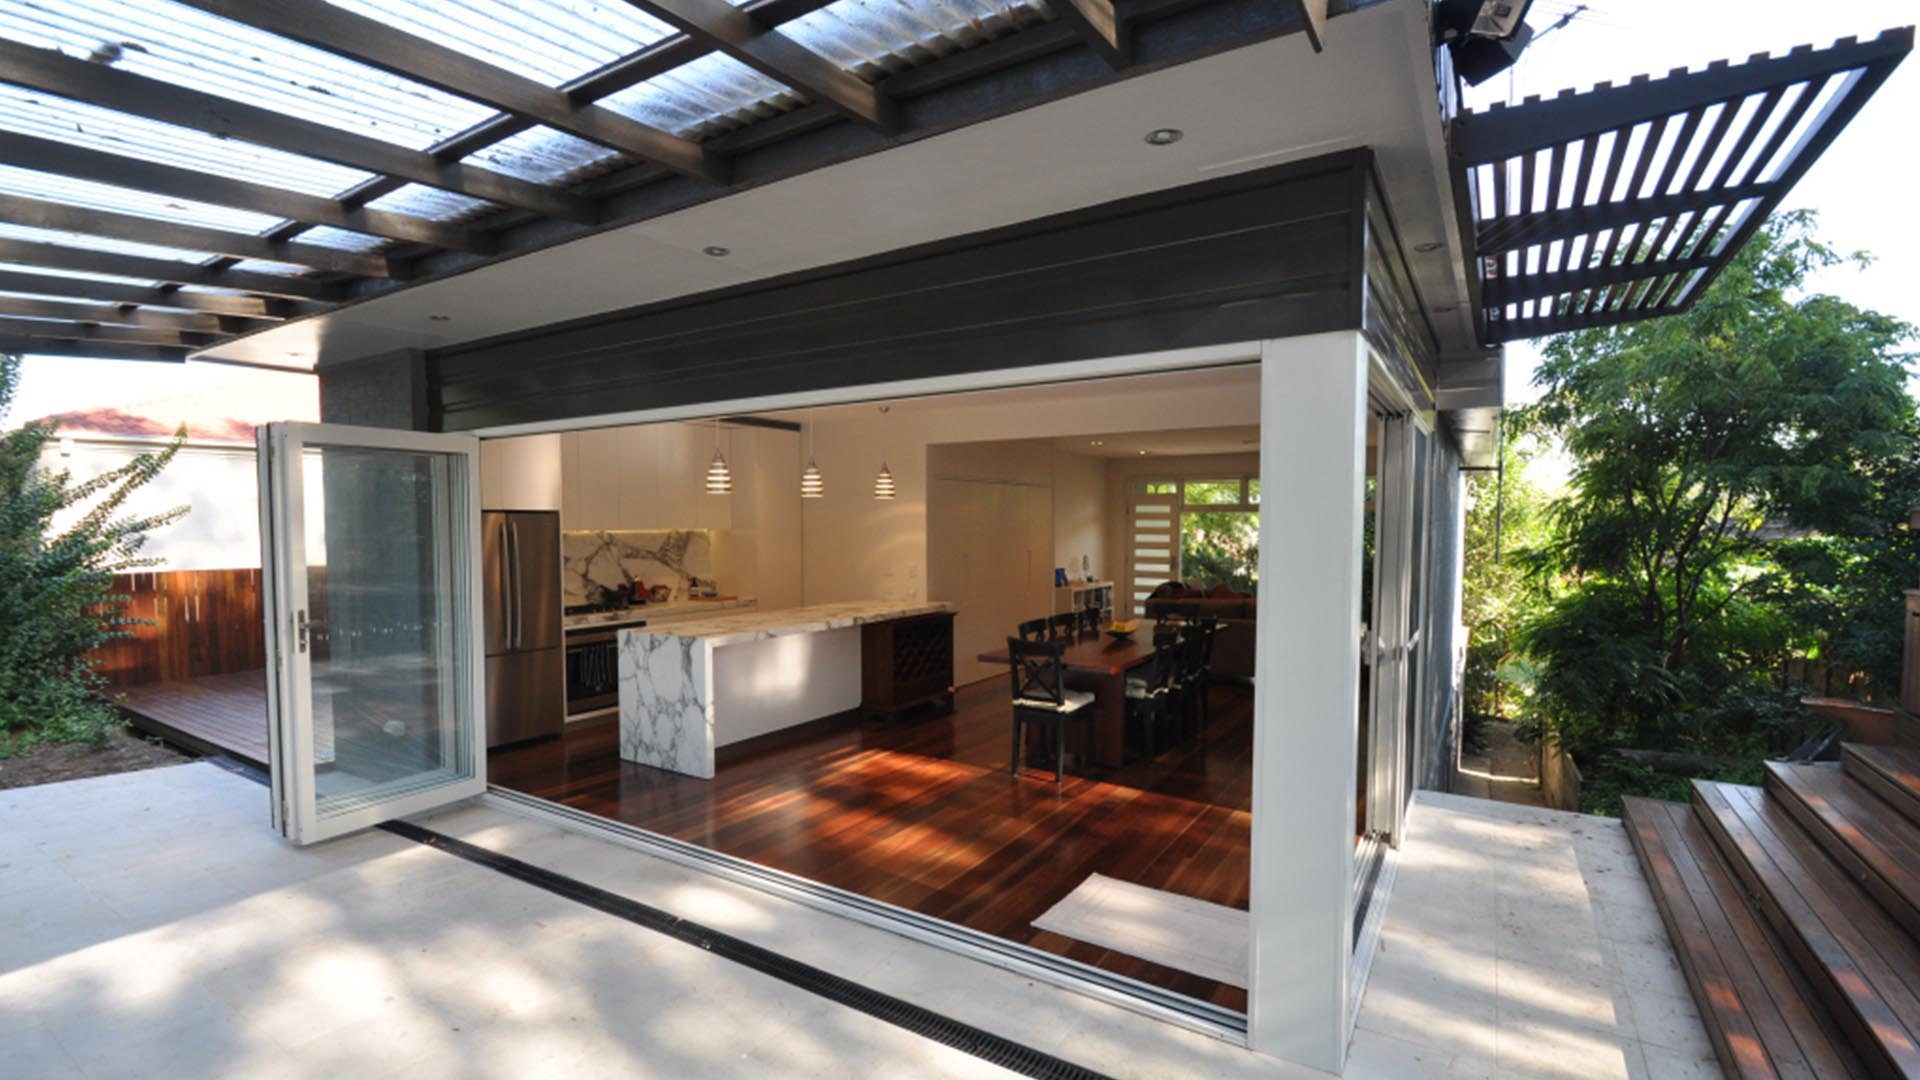 Ganora Rear entertaining area with bifold doors leading into living room and kitchen